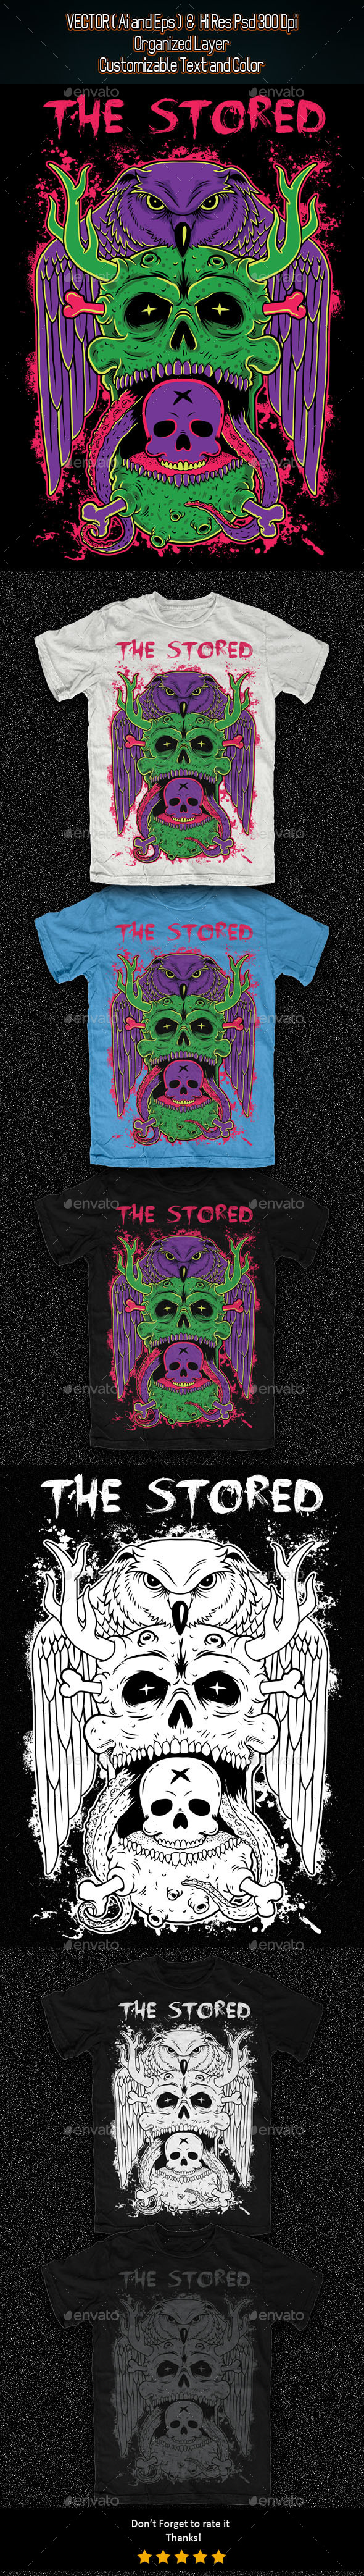 The Stored Illustration - Grunge Designs